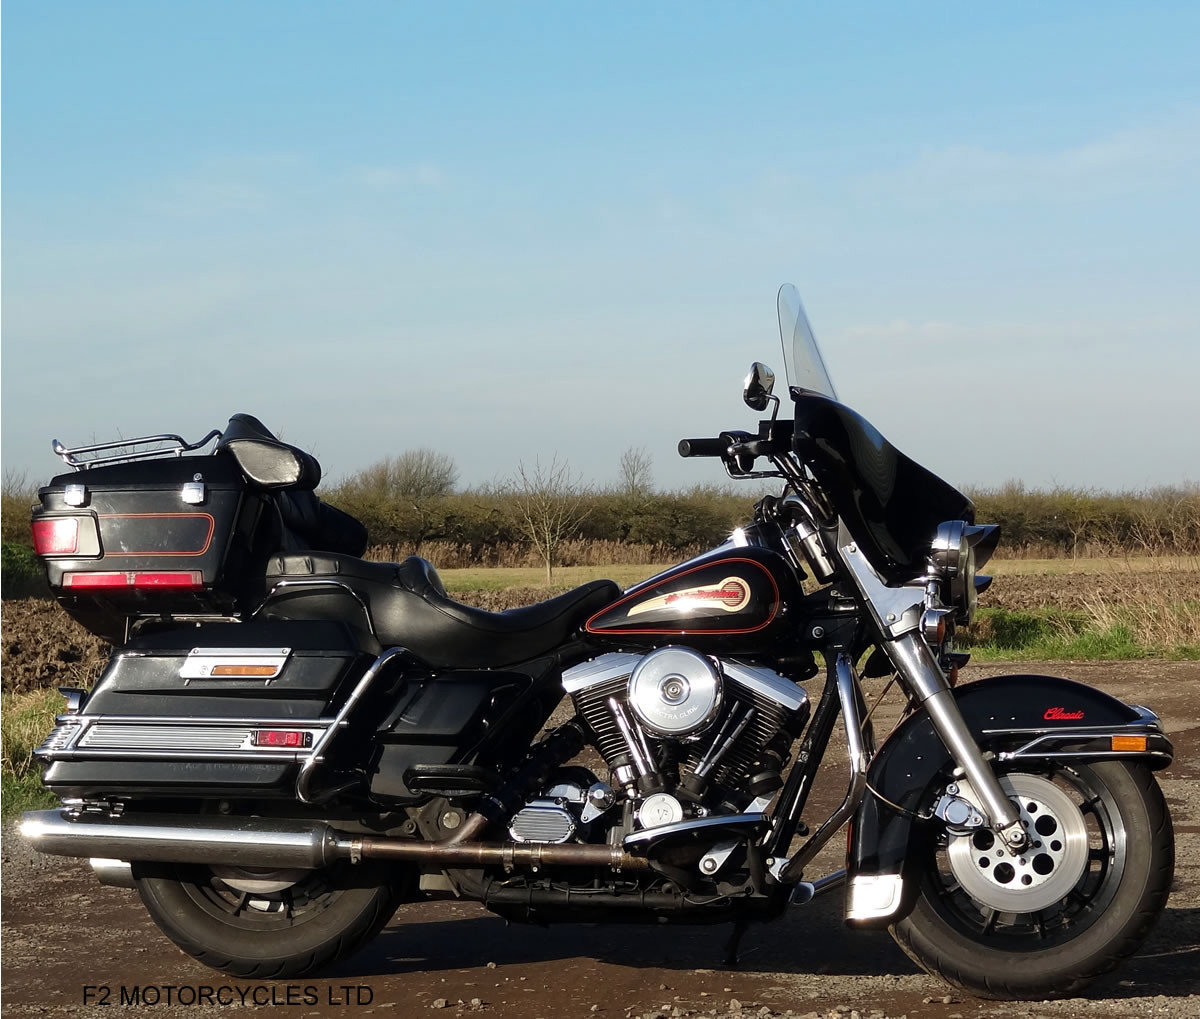 1995 Harley Davidson FLH Electra Glide 1340 Mot, serviced, ready SOLD (picture 1 of 6)